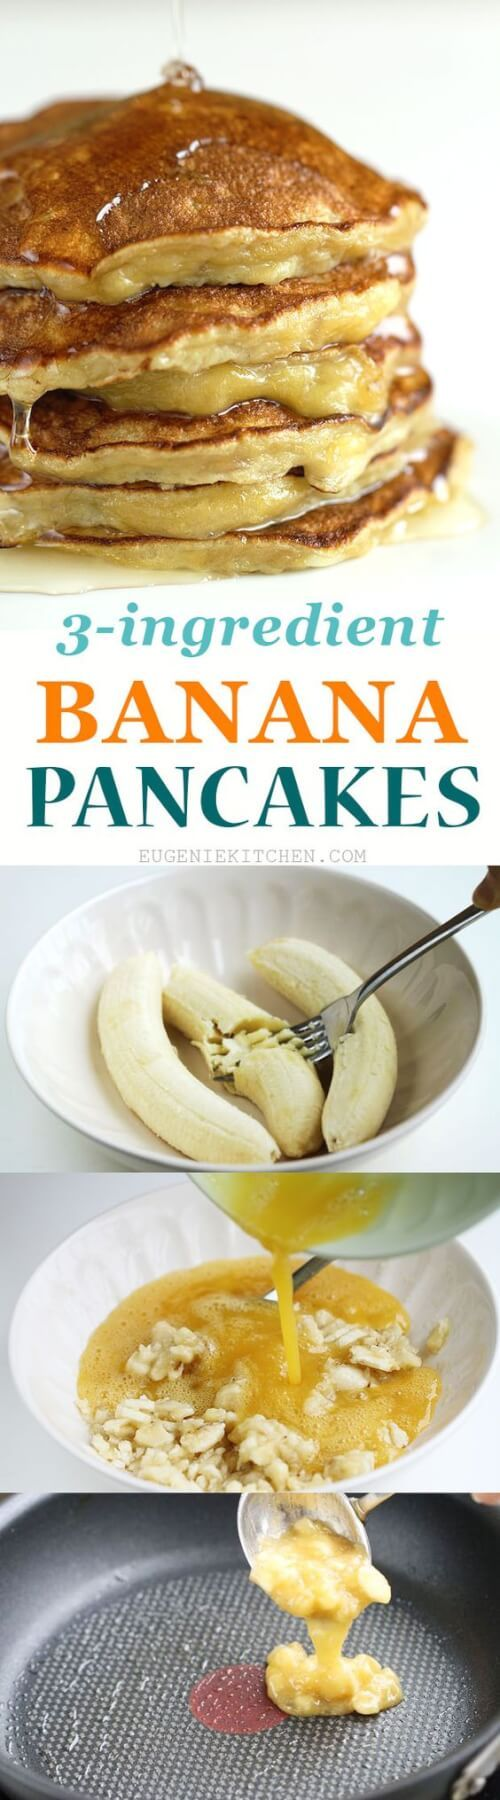 Gluten-Free, Flourless, Low-Calorie 3-Ingredient Banana Pancakes Recipe